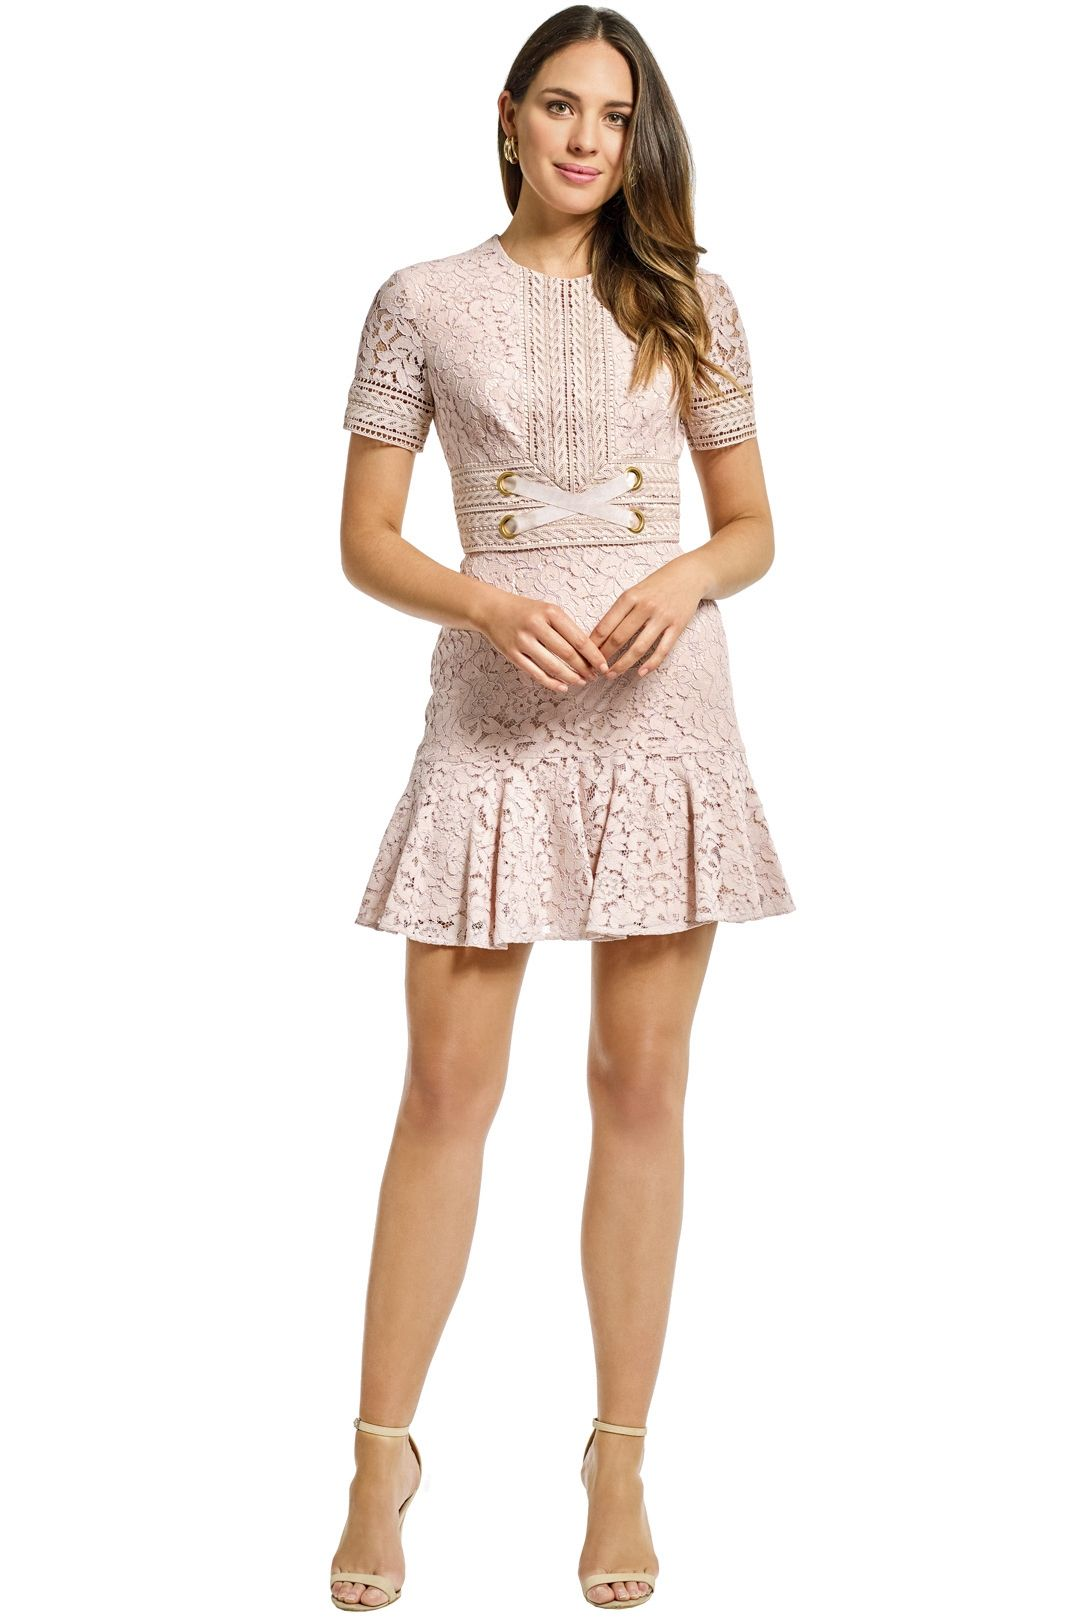 Lover - Flora Mini Flip Dress - Champagne - Front